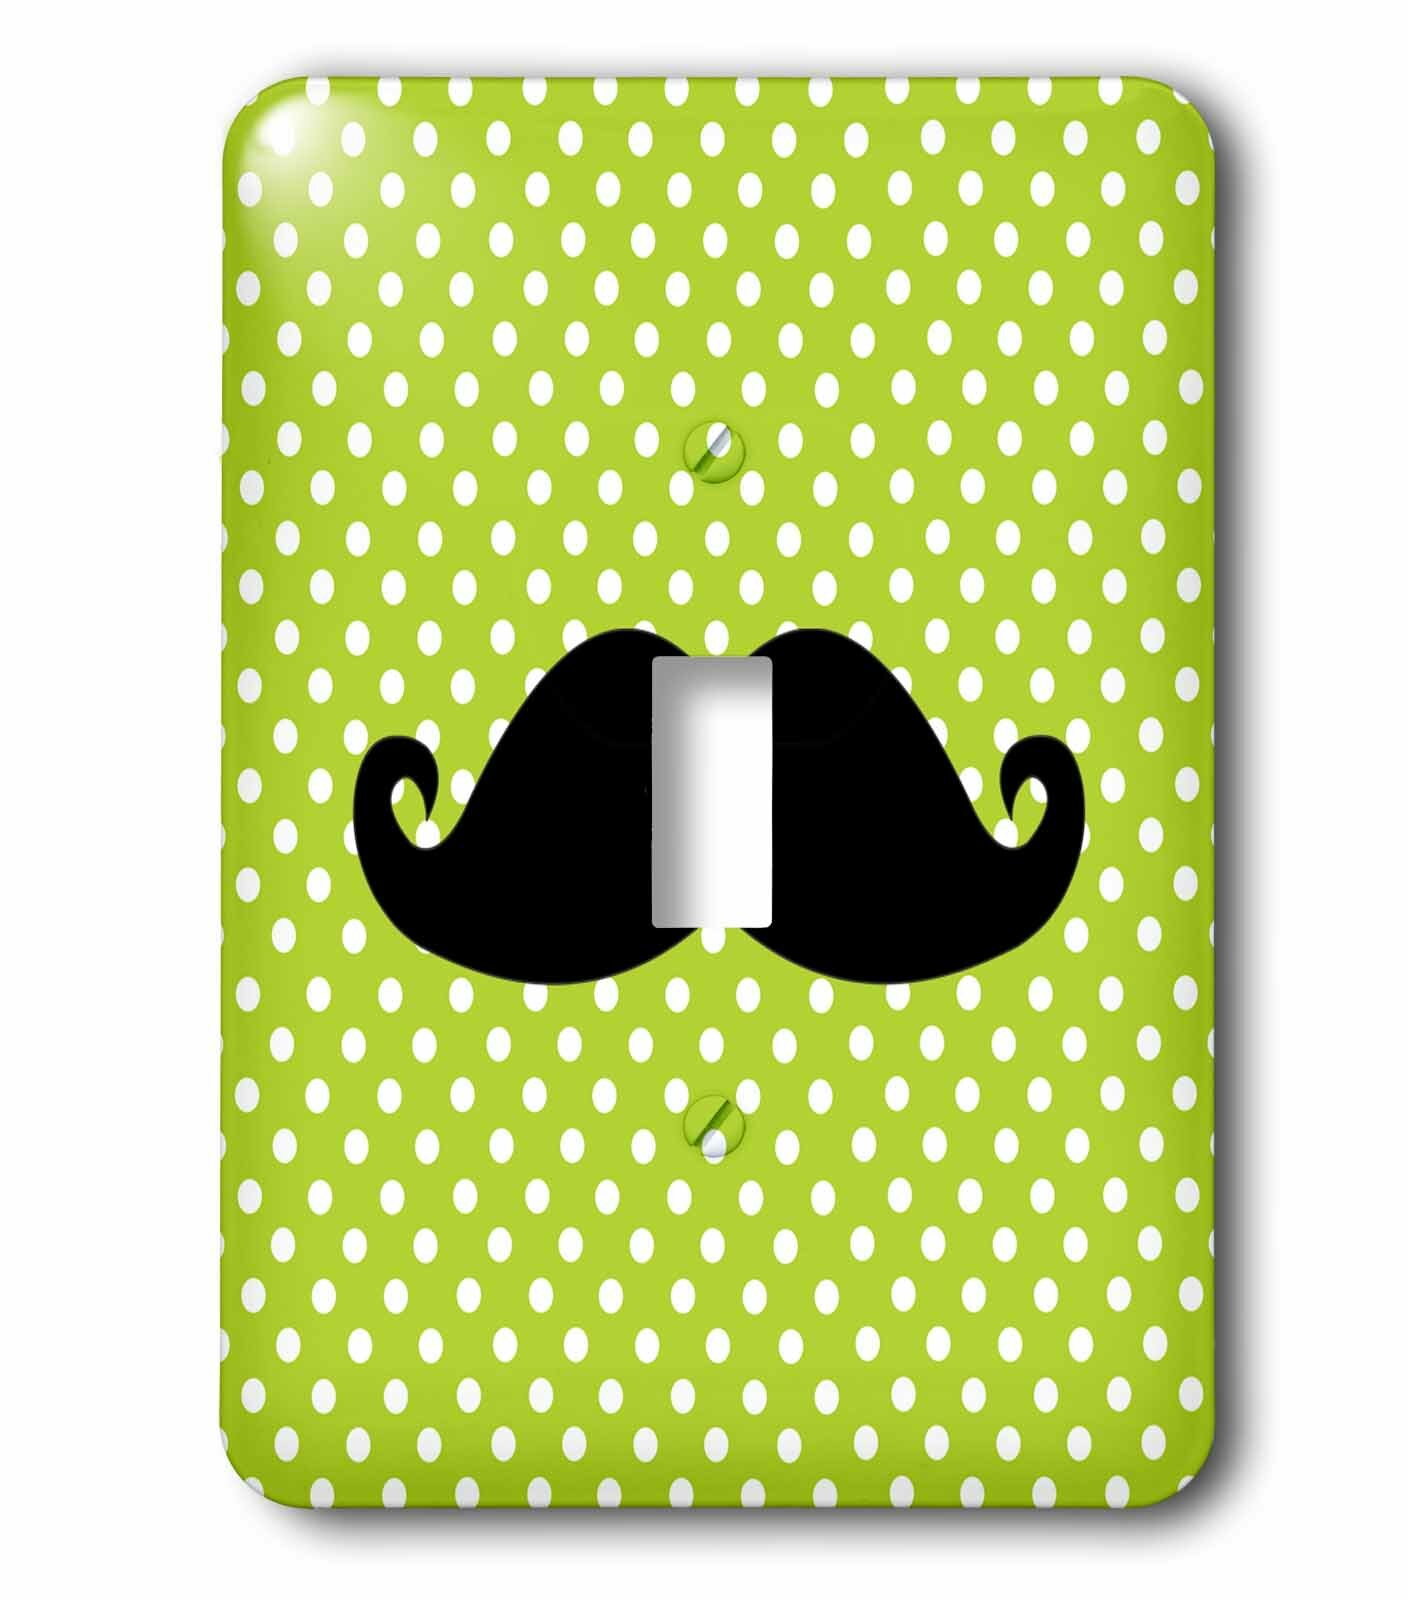 3drose Funny Mustache On Polka Dots 1 Gang Toggle Light Switch Wall Plate Wayfair